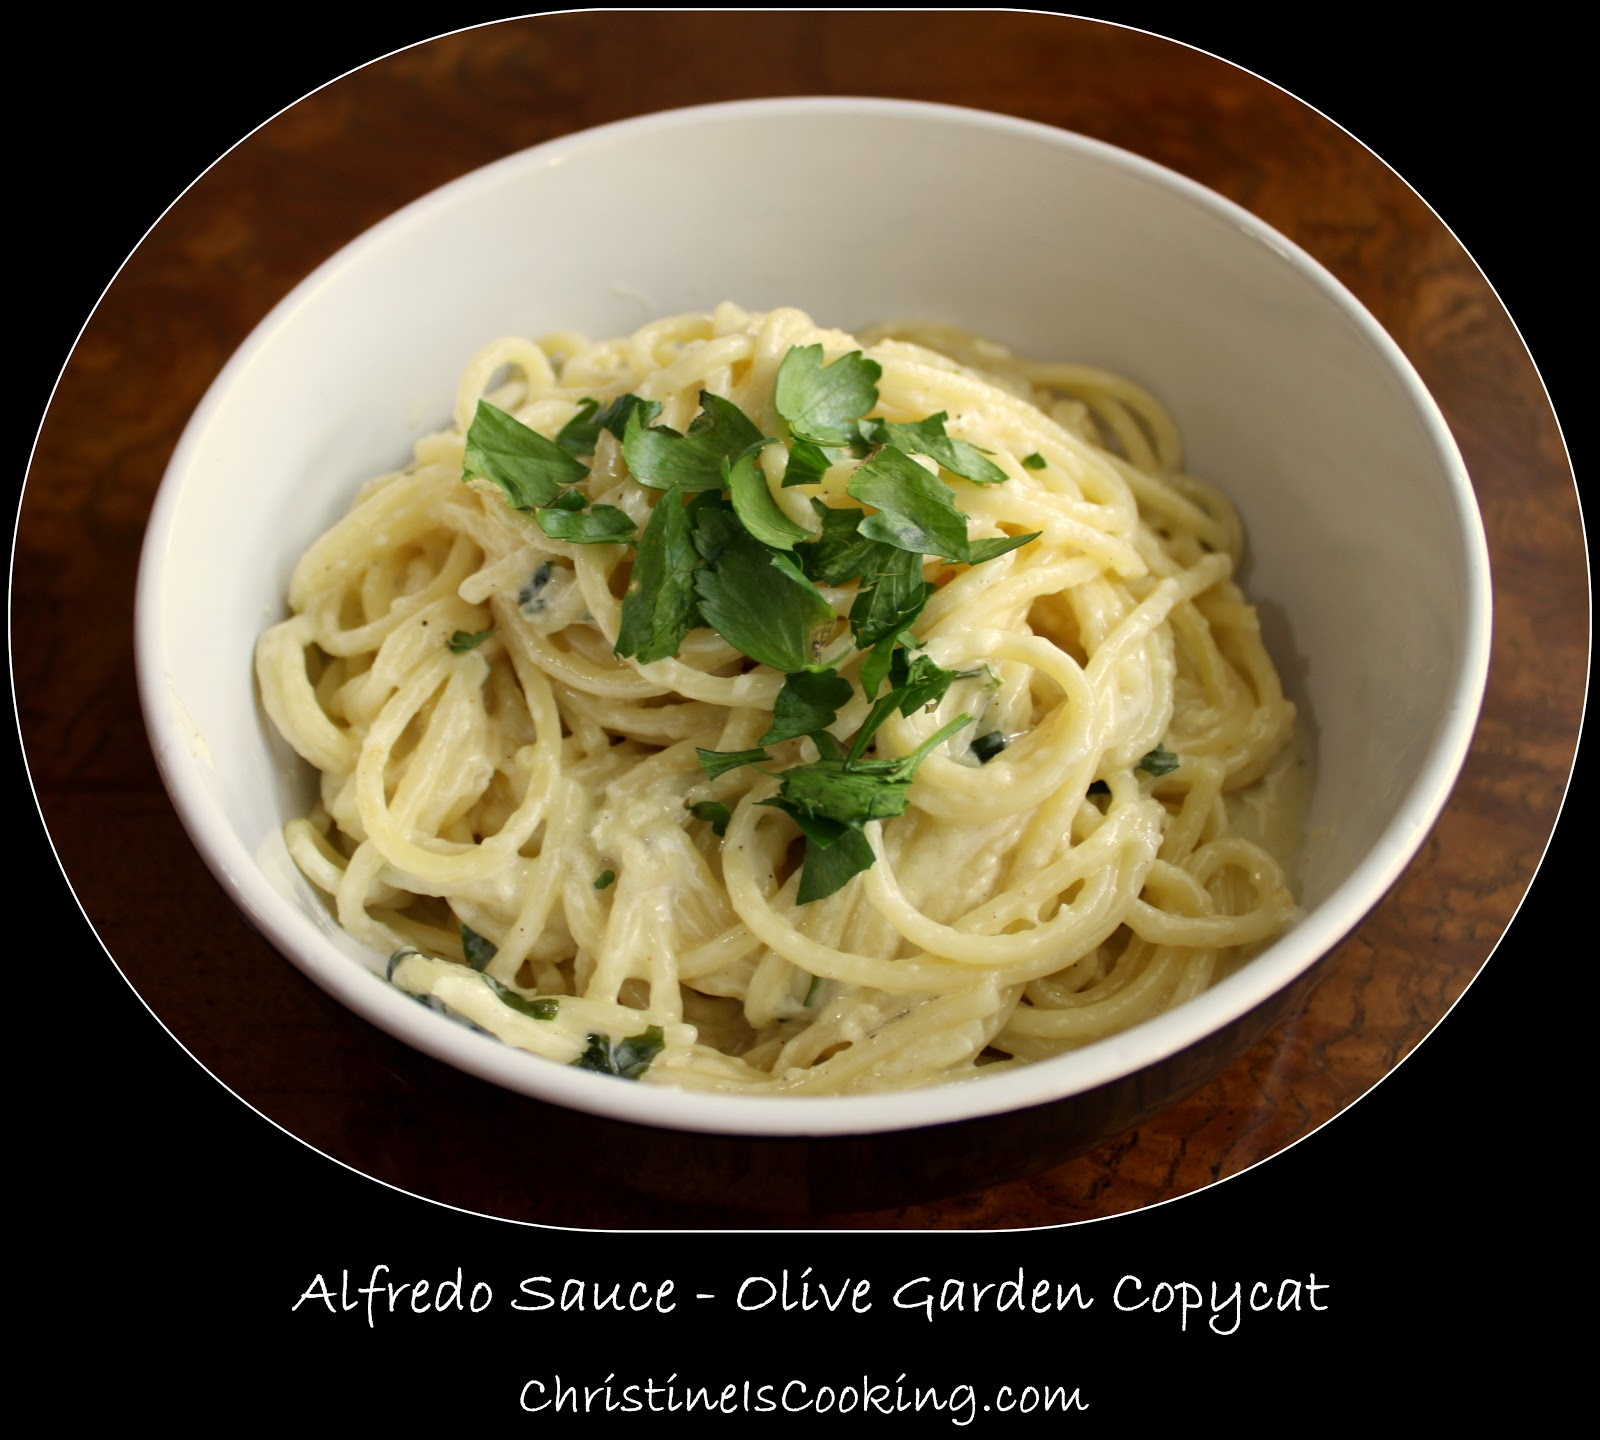 This Copycat Olive Garden Alfredo Sauce recipe is a fast and easy dinner, and proof that homemade is better than going out! This recipe is made with cream cheese for an extra creamy result. I distinctly remember making this alfredo sauce recipe in a massive batch for a group of guys/girls/myself.